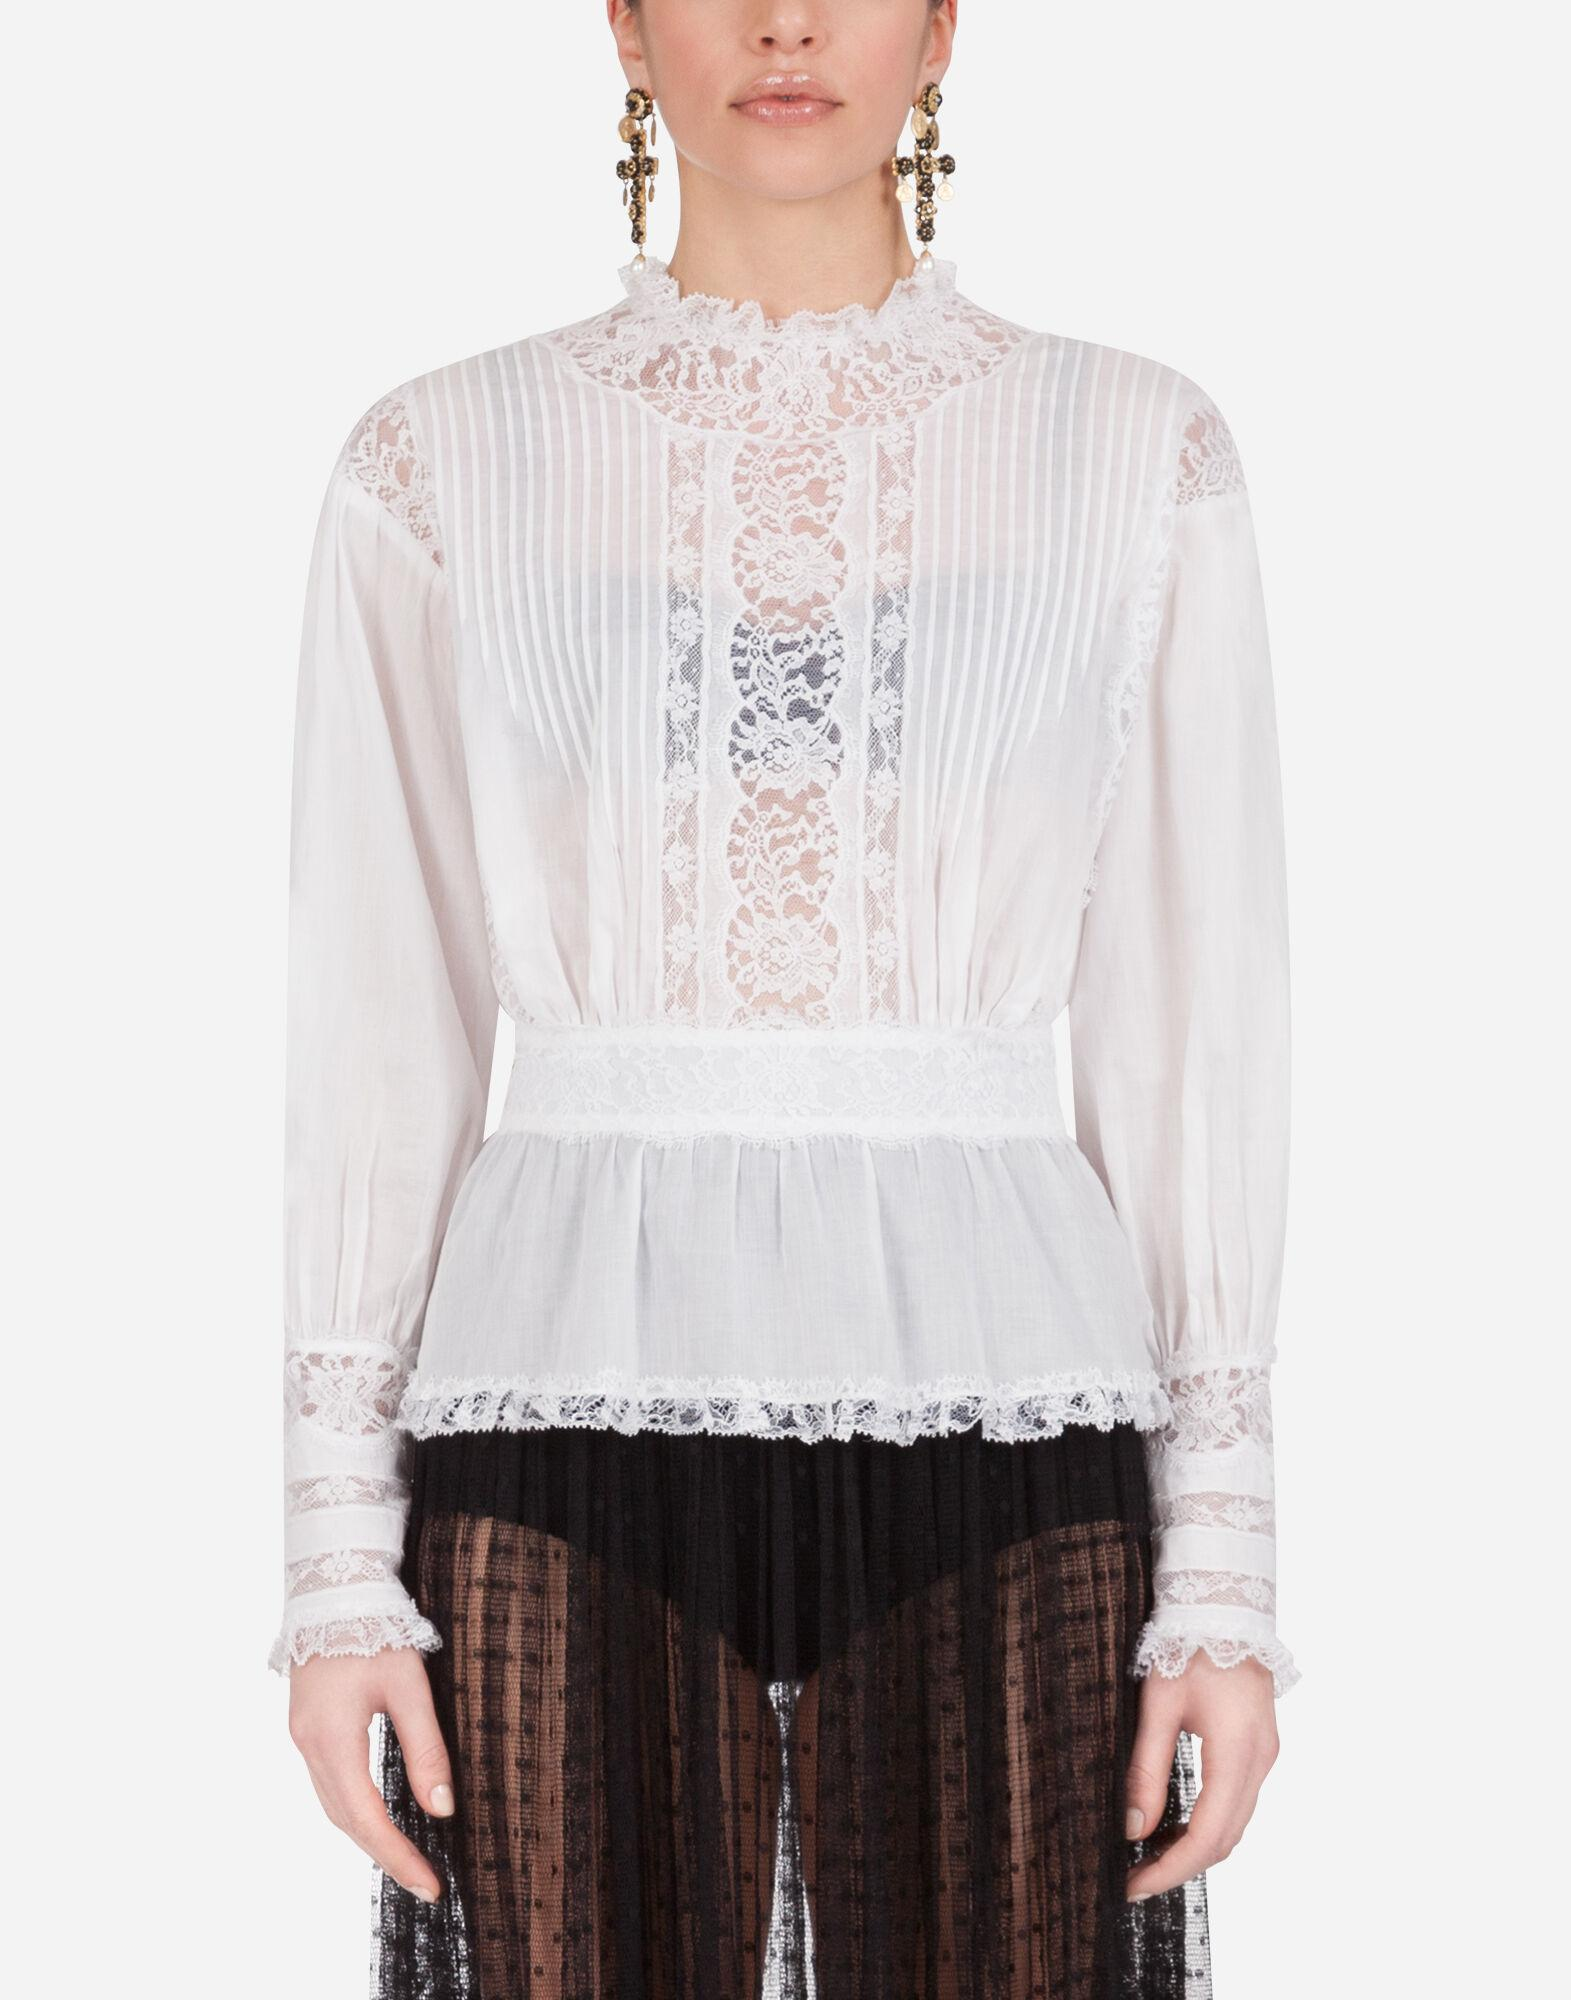 Muslin and lace blouse